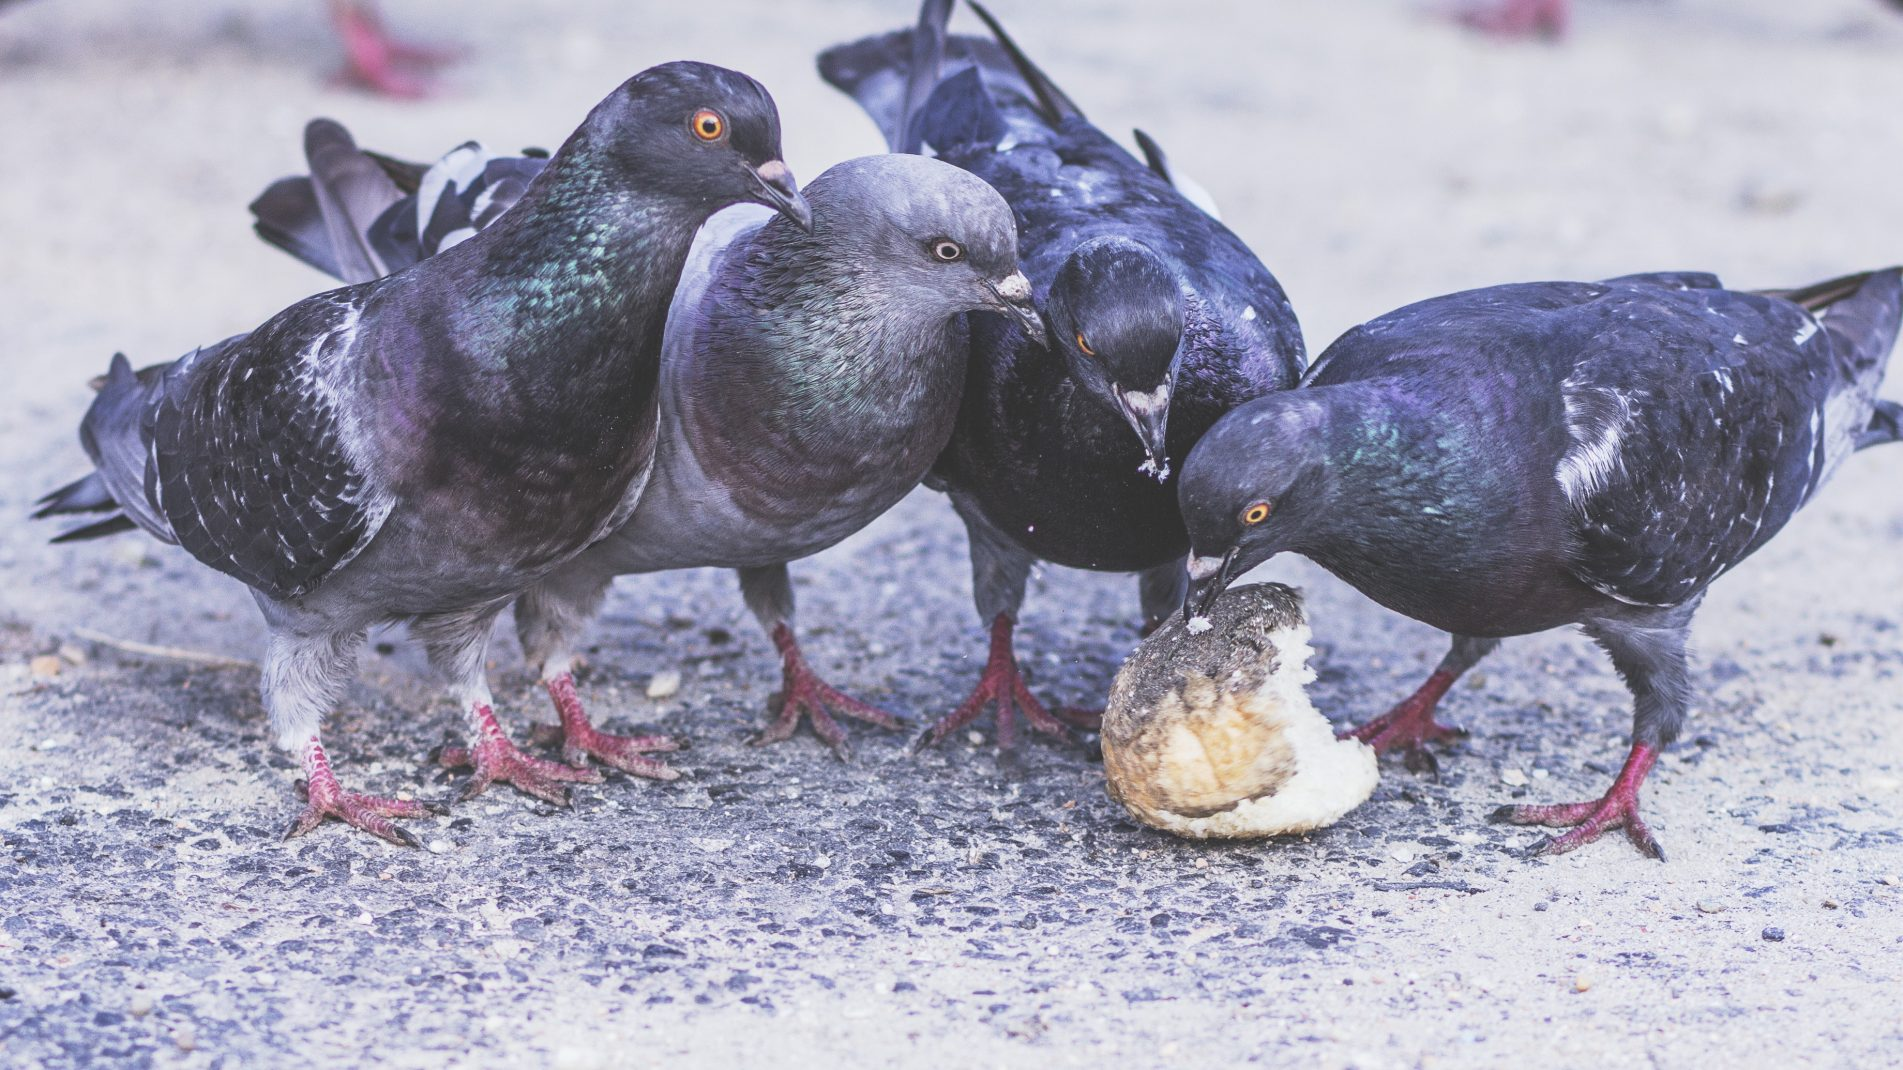 Pigeons Eating Bread Outdoors